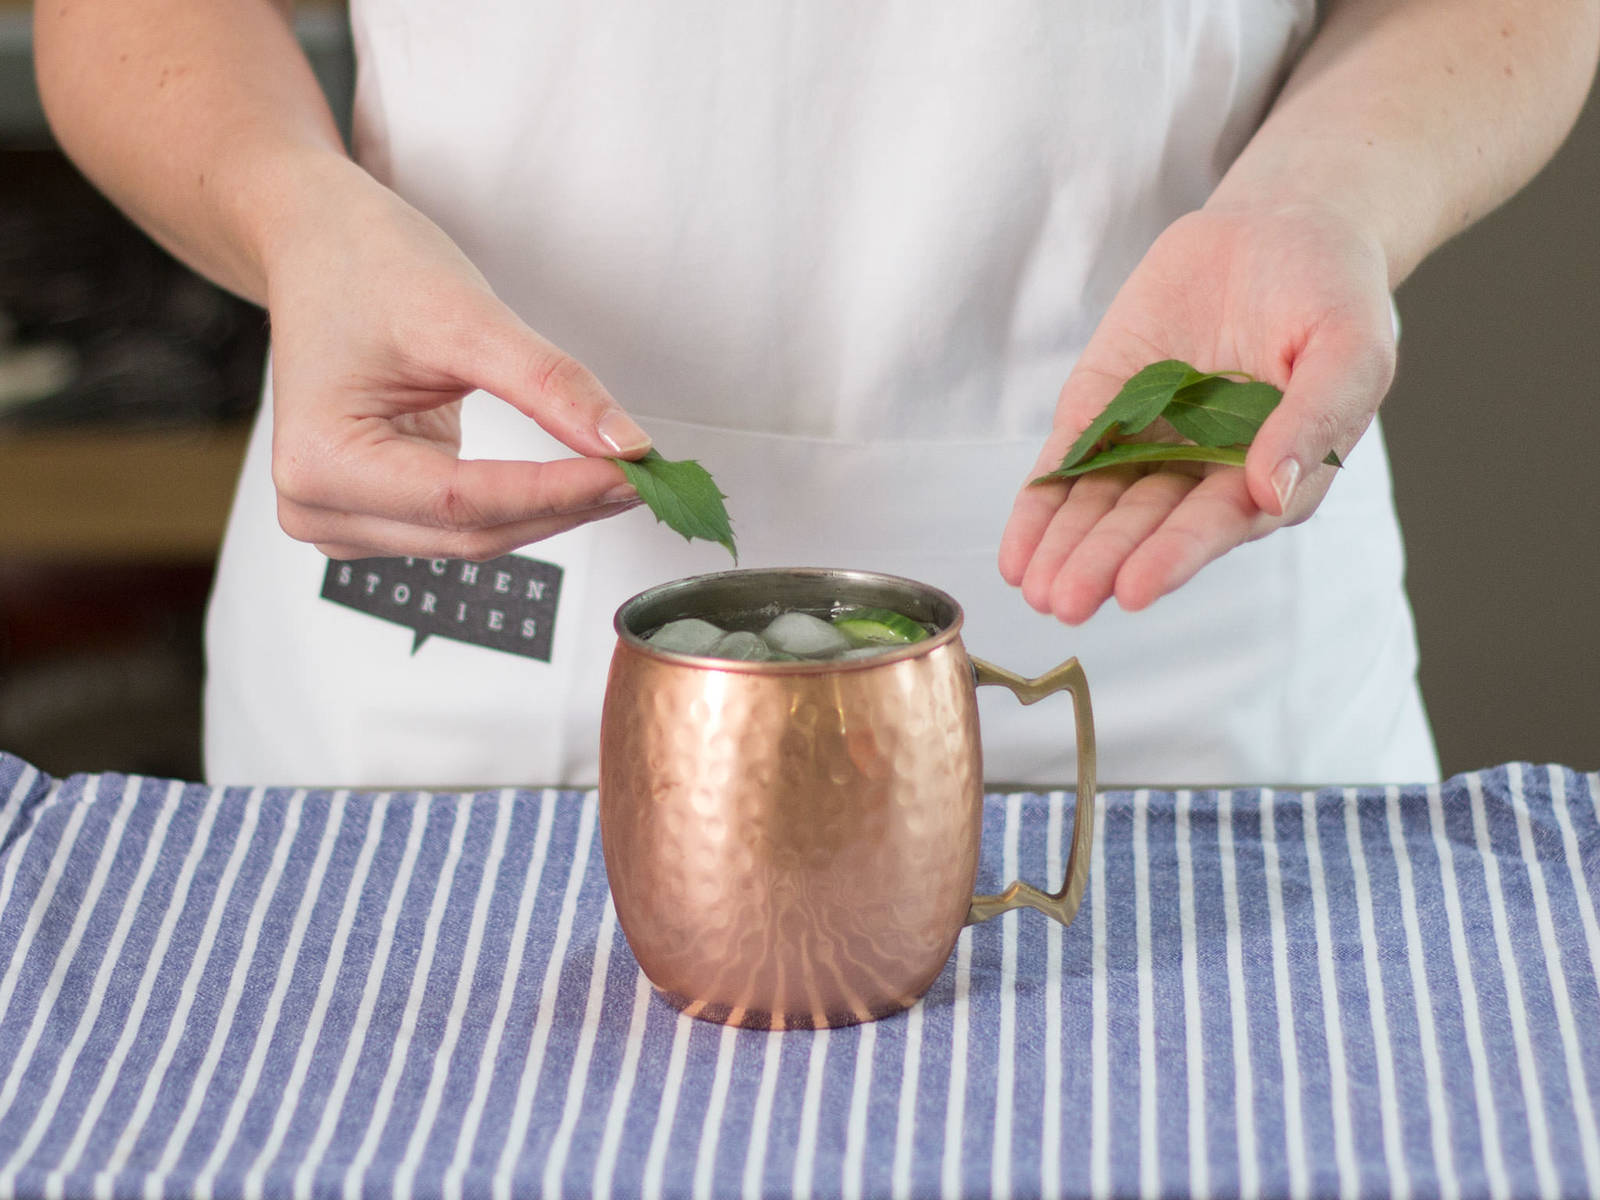 Add cucumbers to mug and garnish with mint leaves.